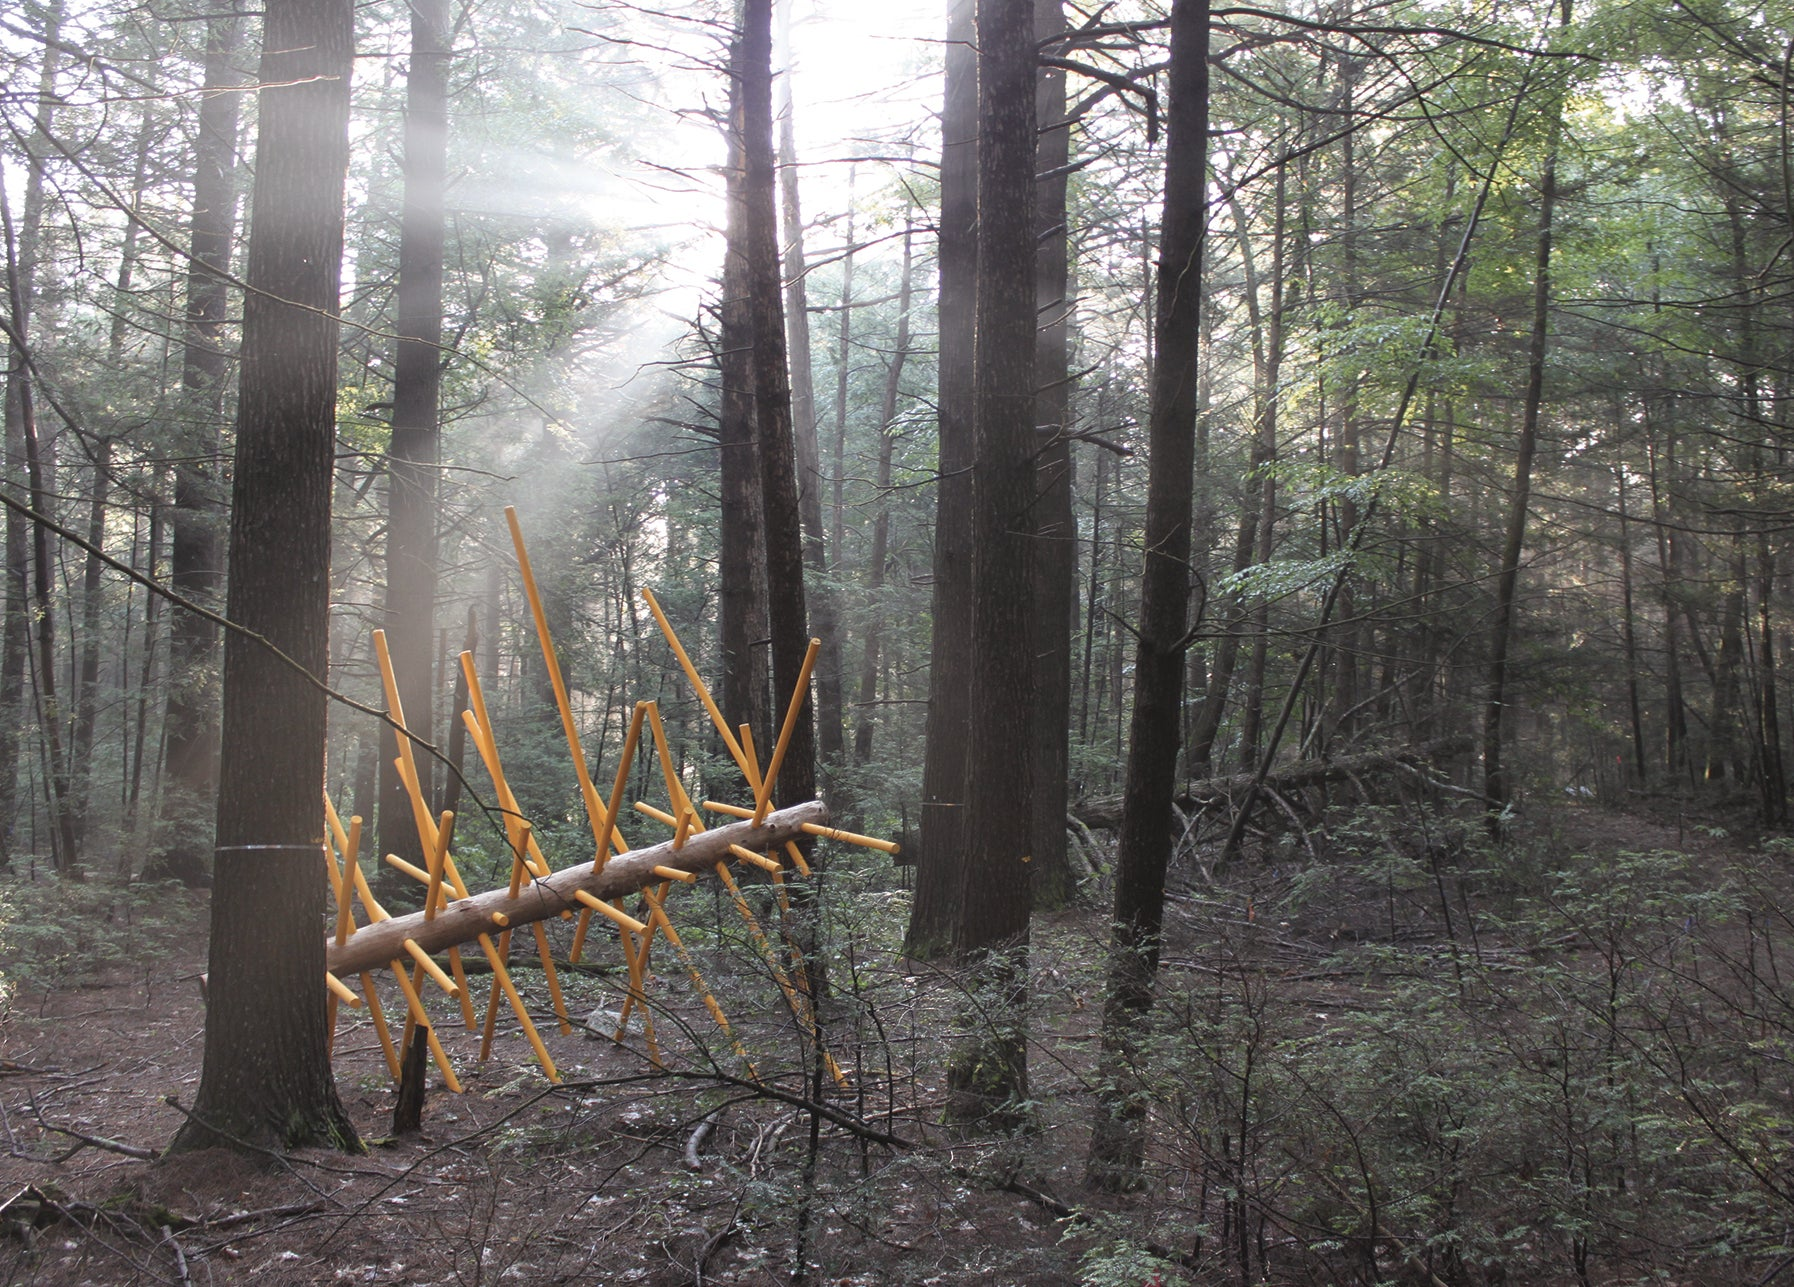 Exchange Tree by David Buckley Borden is one of 12 Hemlock Hospice installations at Harvard Forest.